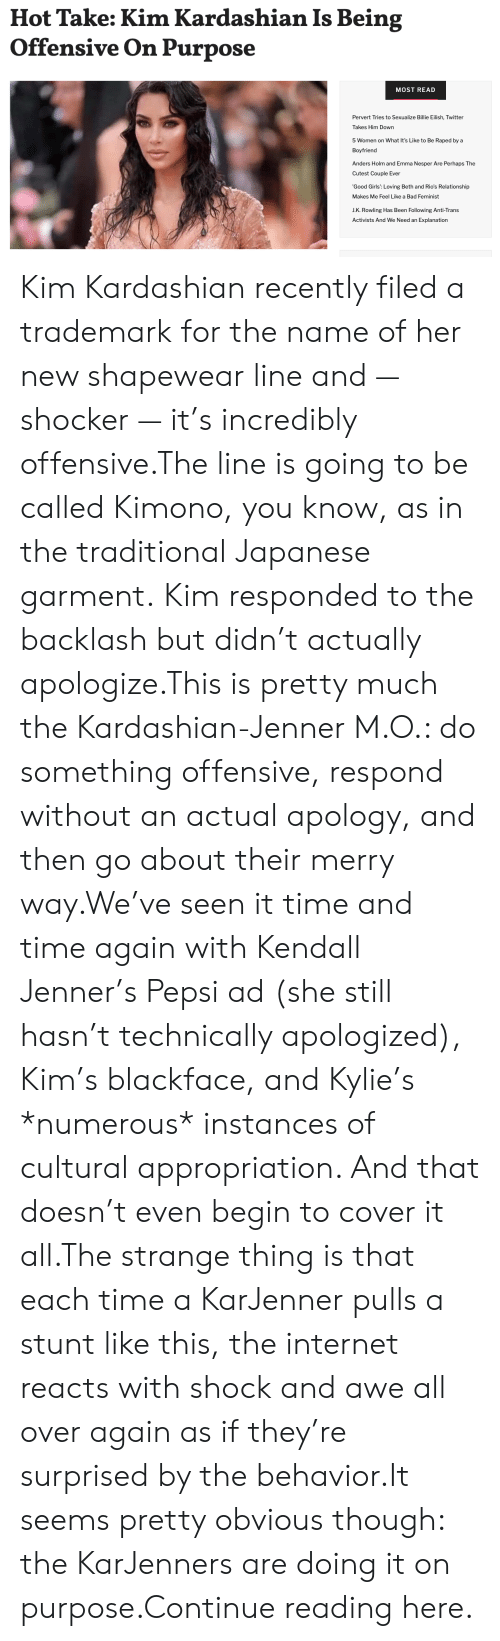 Kim Kardashian: Hot Take: Kim Kardashian Is Being  Offensive On Purpose  MOST READ  Pervert Tries to Sexualize Billie Eilish, Twitter  Takes Him Down  5 Women on What It's Like to Be Raped by a  Boyfriend  Anders Holm and Emma Nesper Are Perhaps The  Cutest Couple Ever  'Good Girls': Loving Beth and Rio's Relationship  Makes Me Feel Like a Bad Feminist  J.K. Rowling Has Been Following Anti-Trans  Activists And We Need an Explanation Kim Kardashian recently filed a trademark for the name of her new shapewear line and — shocker — it's incredibly offensive.The line is going to be called Kimono, you know, as in the traditional Japanese garment. Kim responded to the backlash but didn't actually apologize.This is pretty much the Kardashian-Jenner M.O.: do something offensive, respond without an actual apology, and then go about their merry way.We've seen it time and time again with Kendall Jenner's Pepsi ad (she still hasn't technically apologized), Kim's blackface, and Kylie's *numerous* instances of cultural appropriation. And that doesn't even begin to cover it all.The strange thing is that each time a KarJenner pulls a stunt like this, the internet reacts with shock and awe all over again as if they're surprised by the behavior.It seems pretty obvious though: the KarJenners are doing it on purpose.Continue reading here.